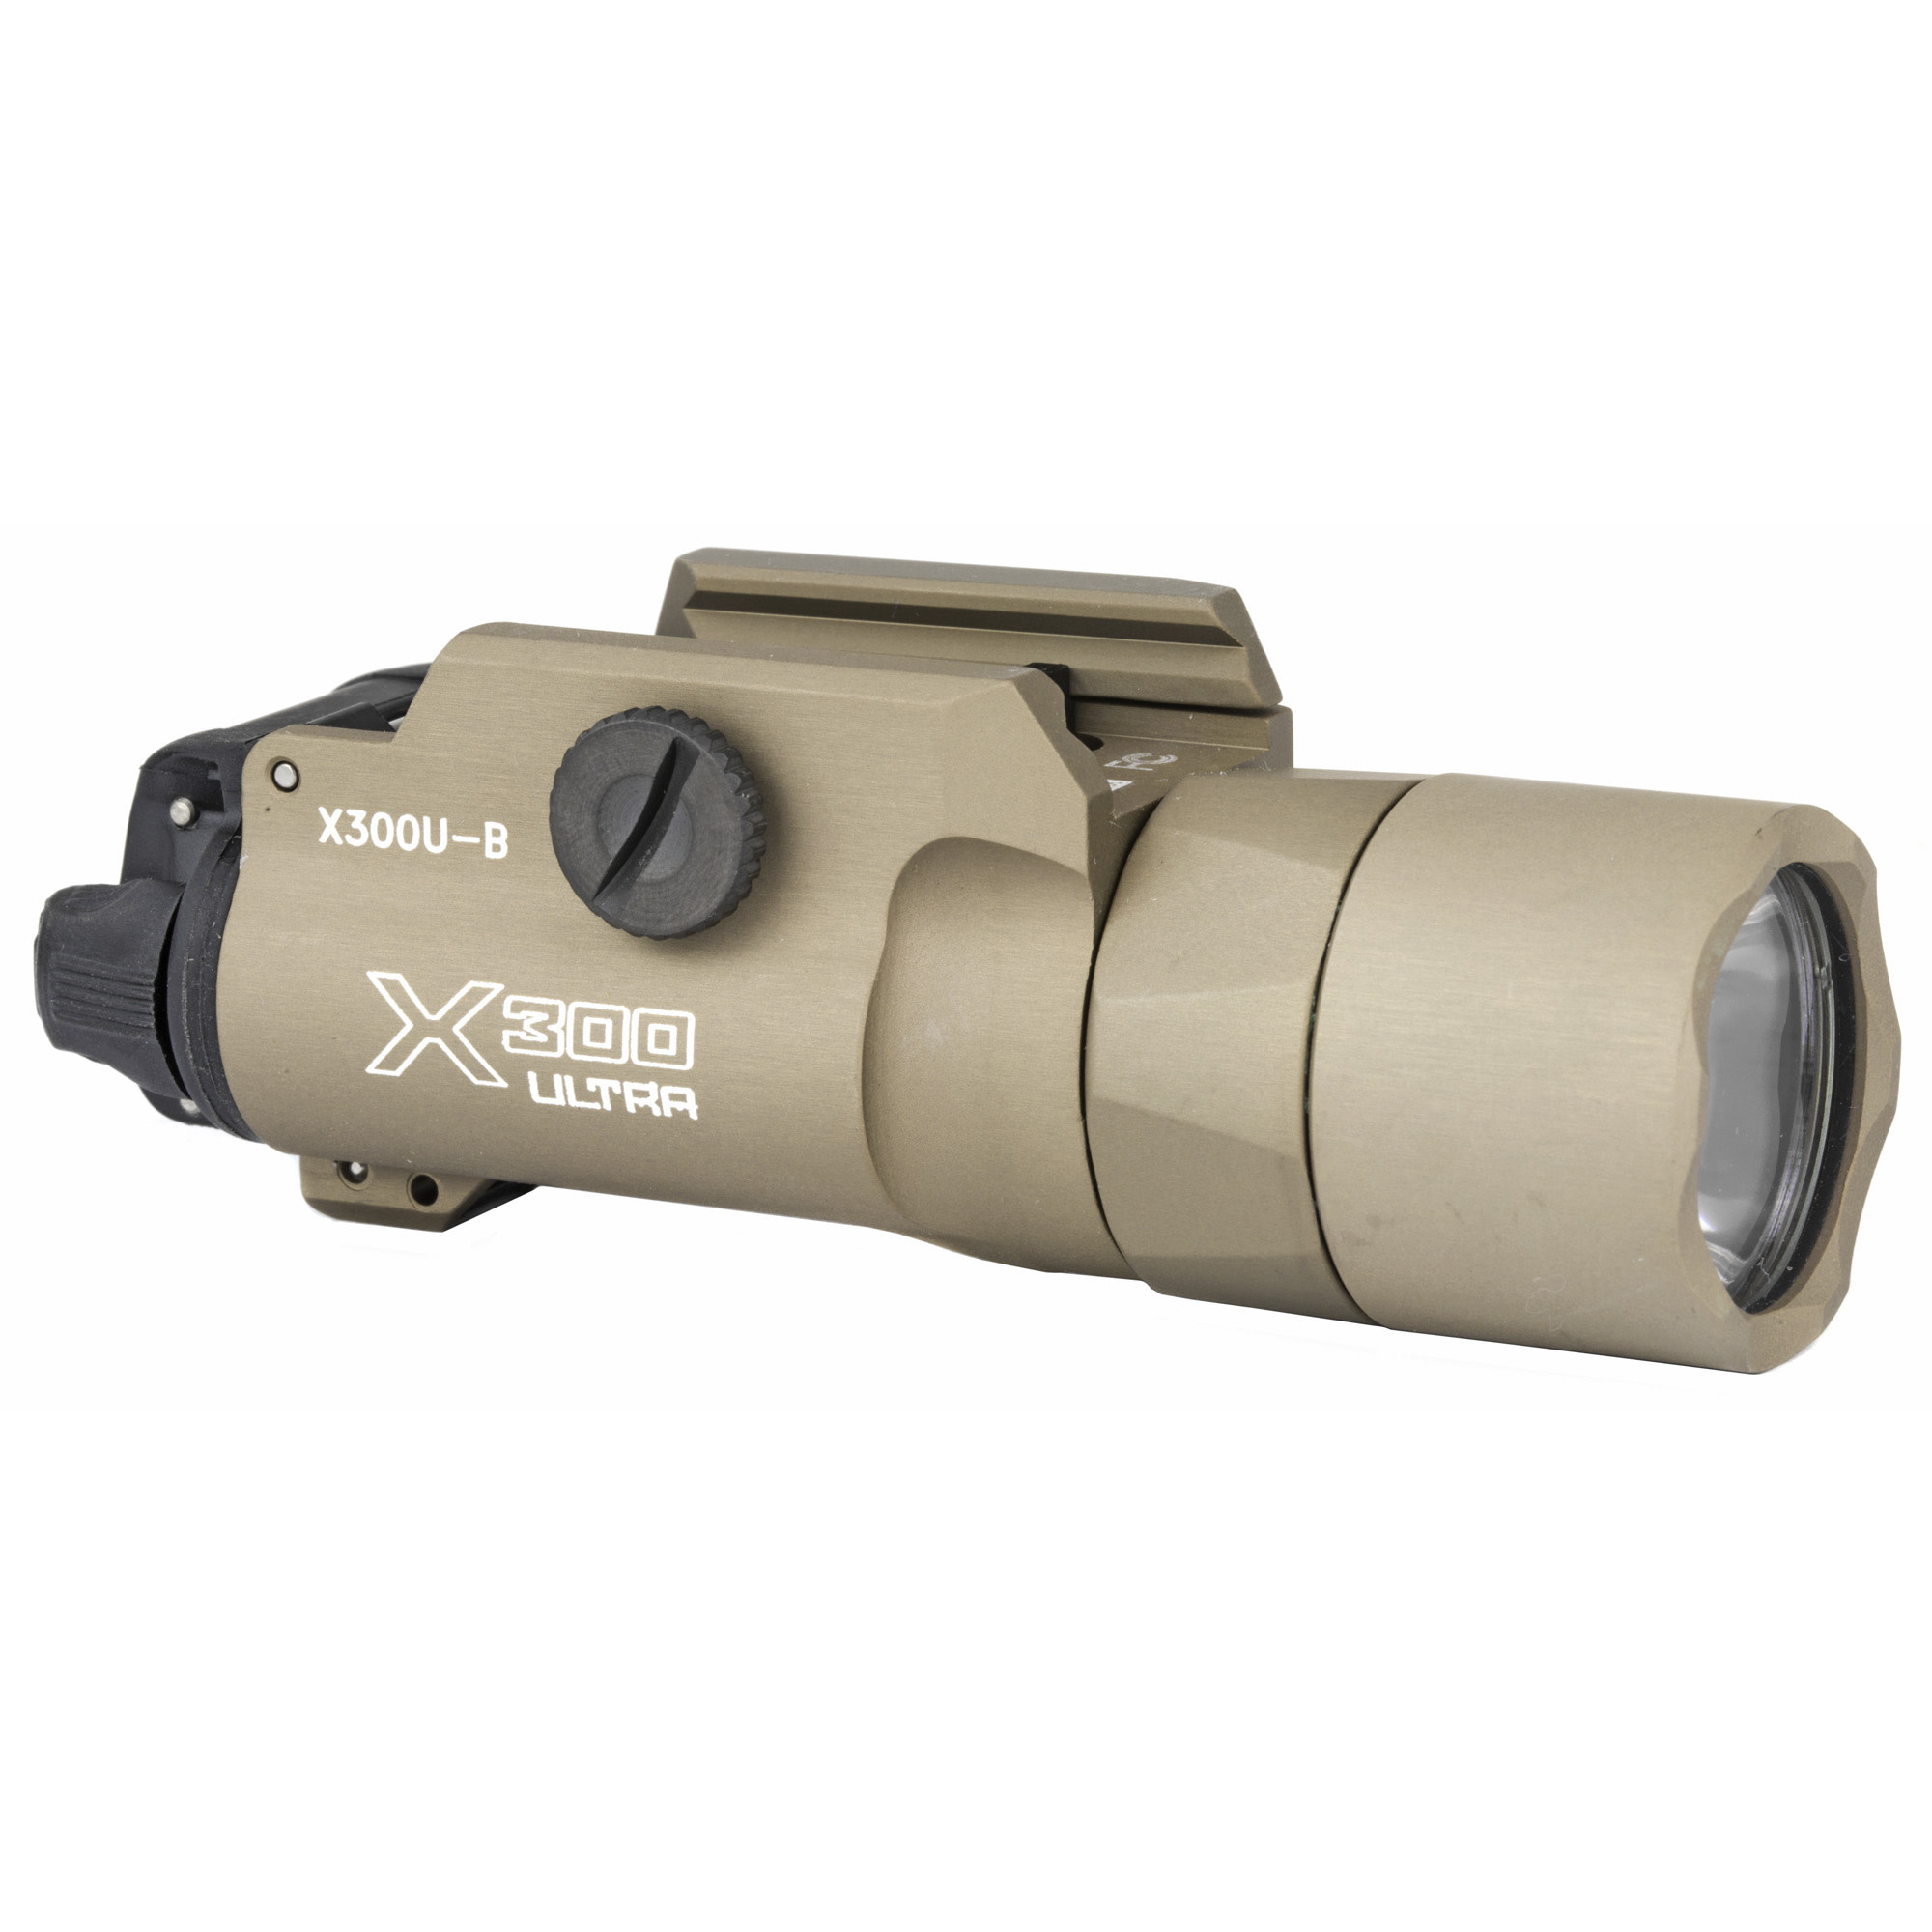 Surefire, X300 Weaponlight, 1000 Lumens, Tan